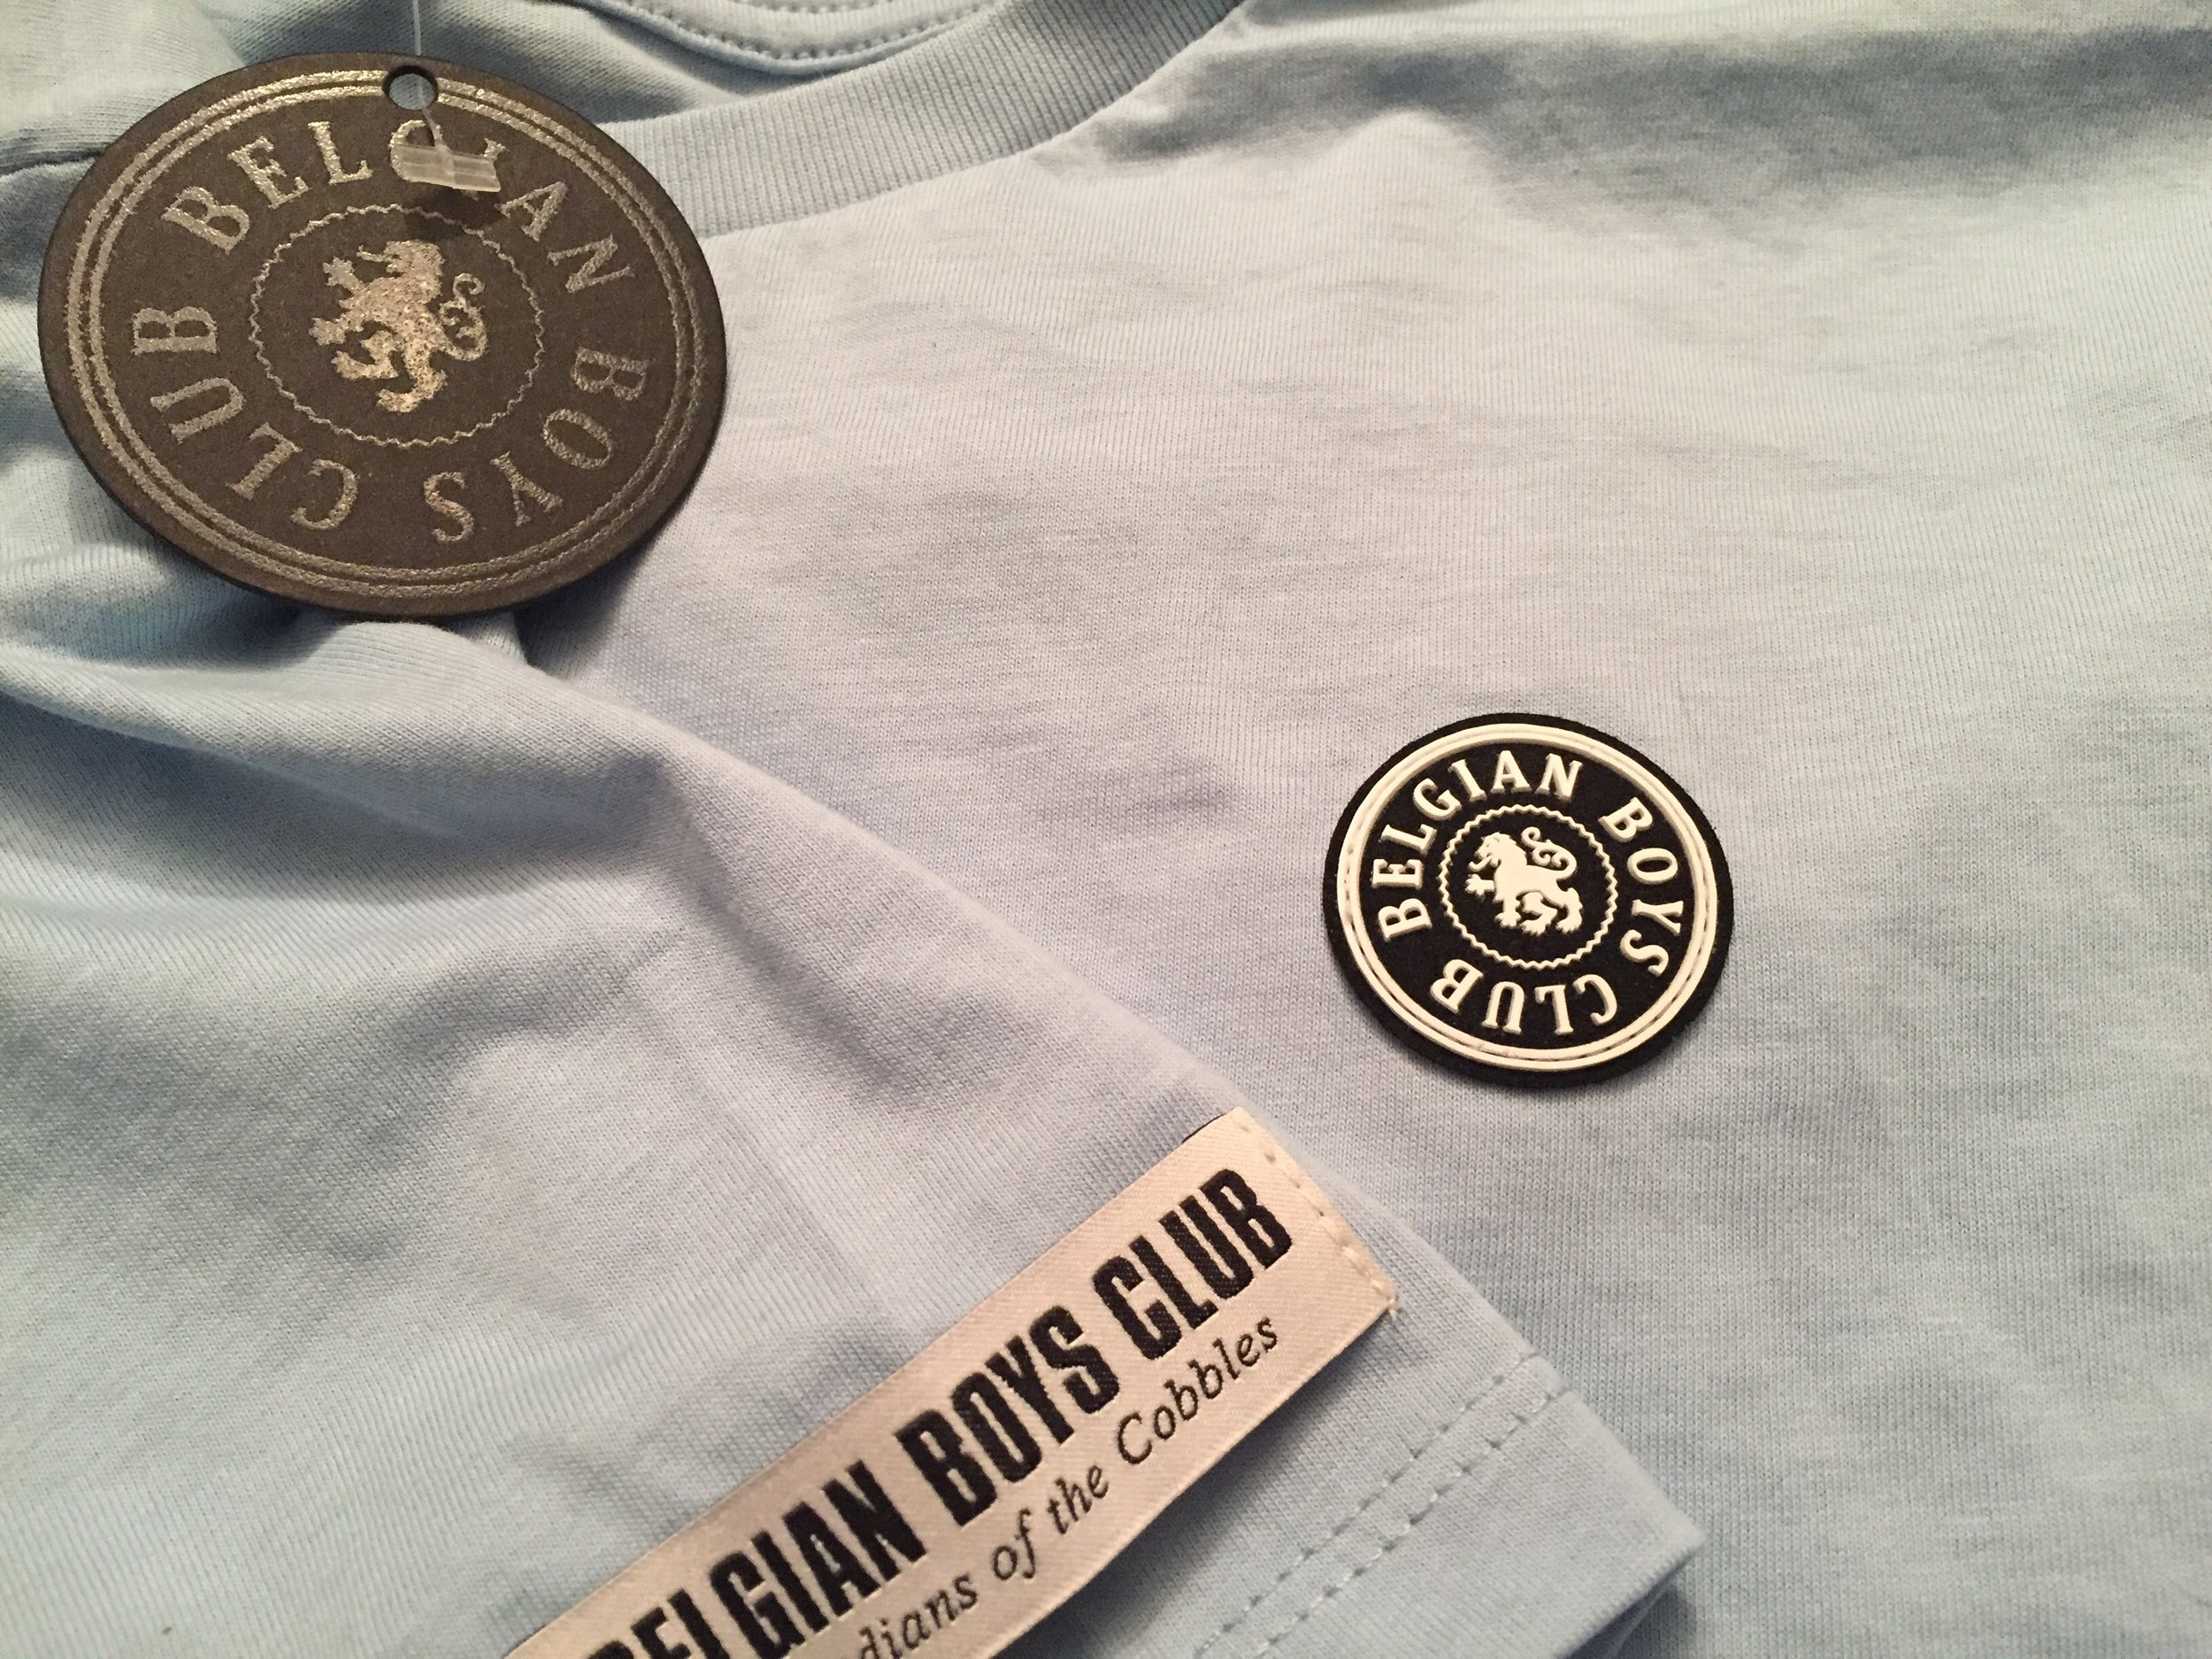 Belgian Crew goes the extra length to sew labels onto their crew shirt.